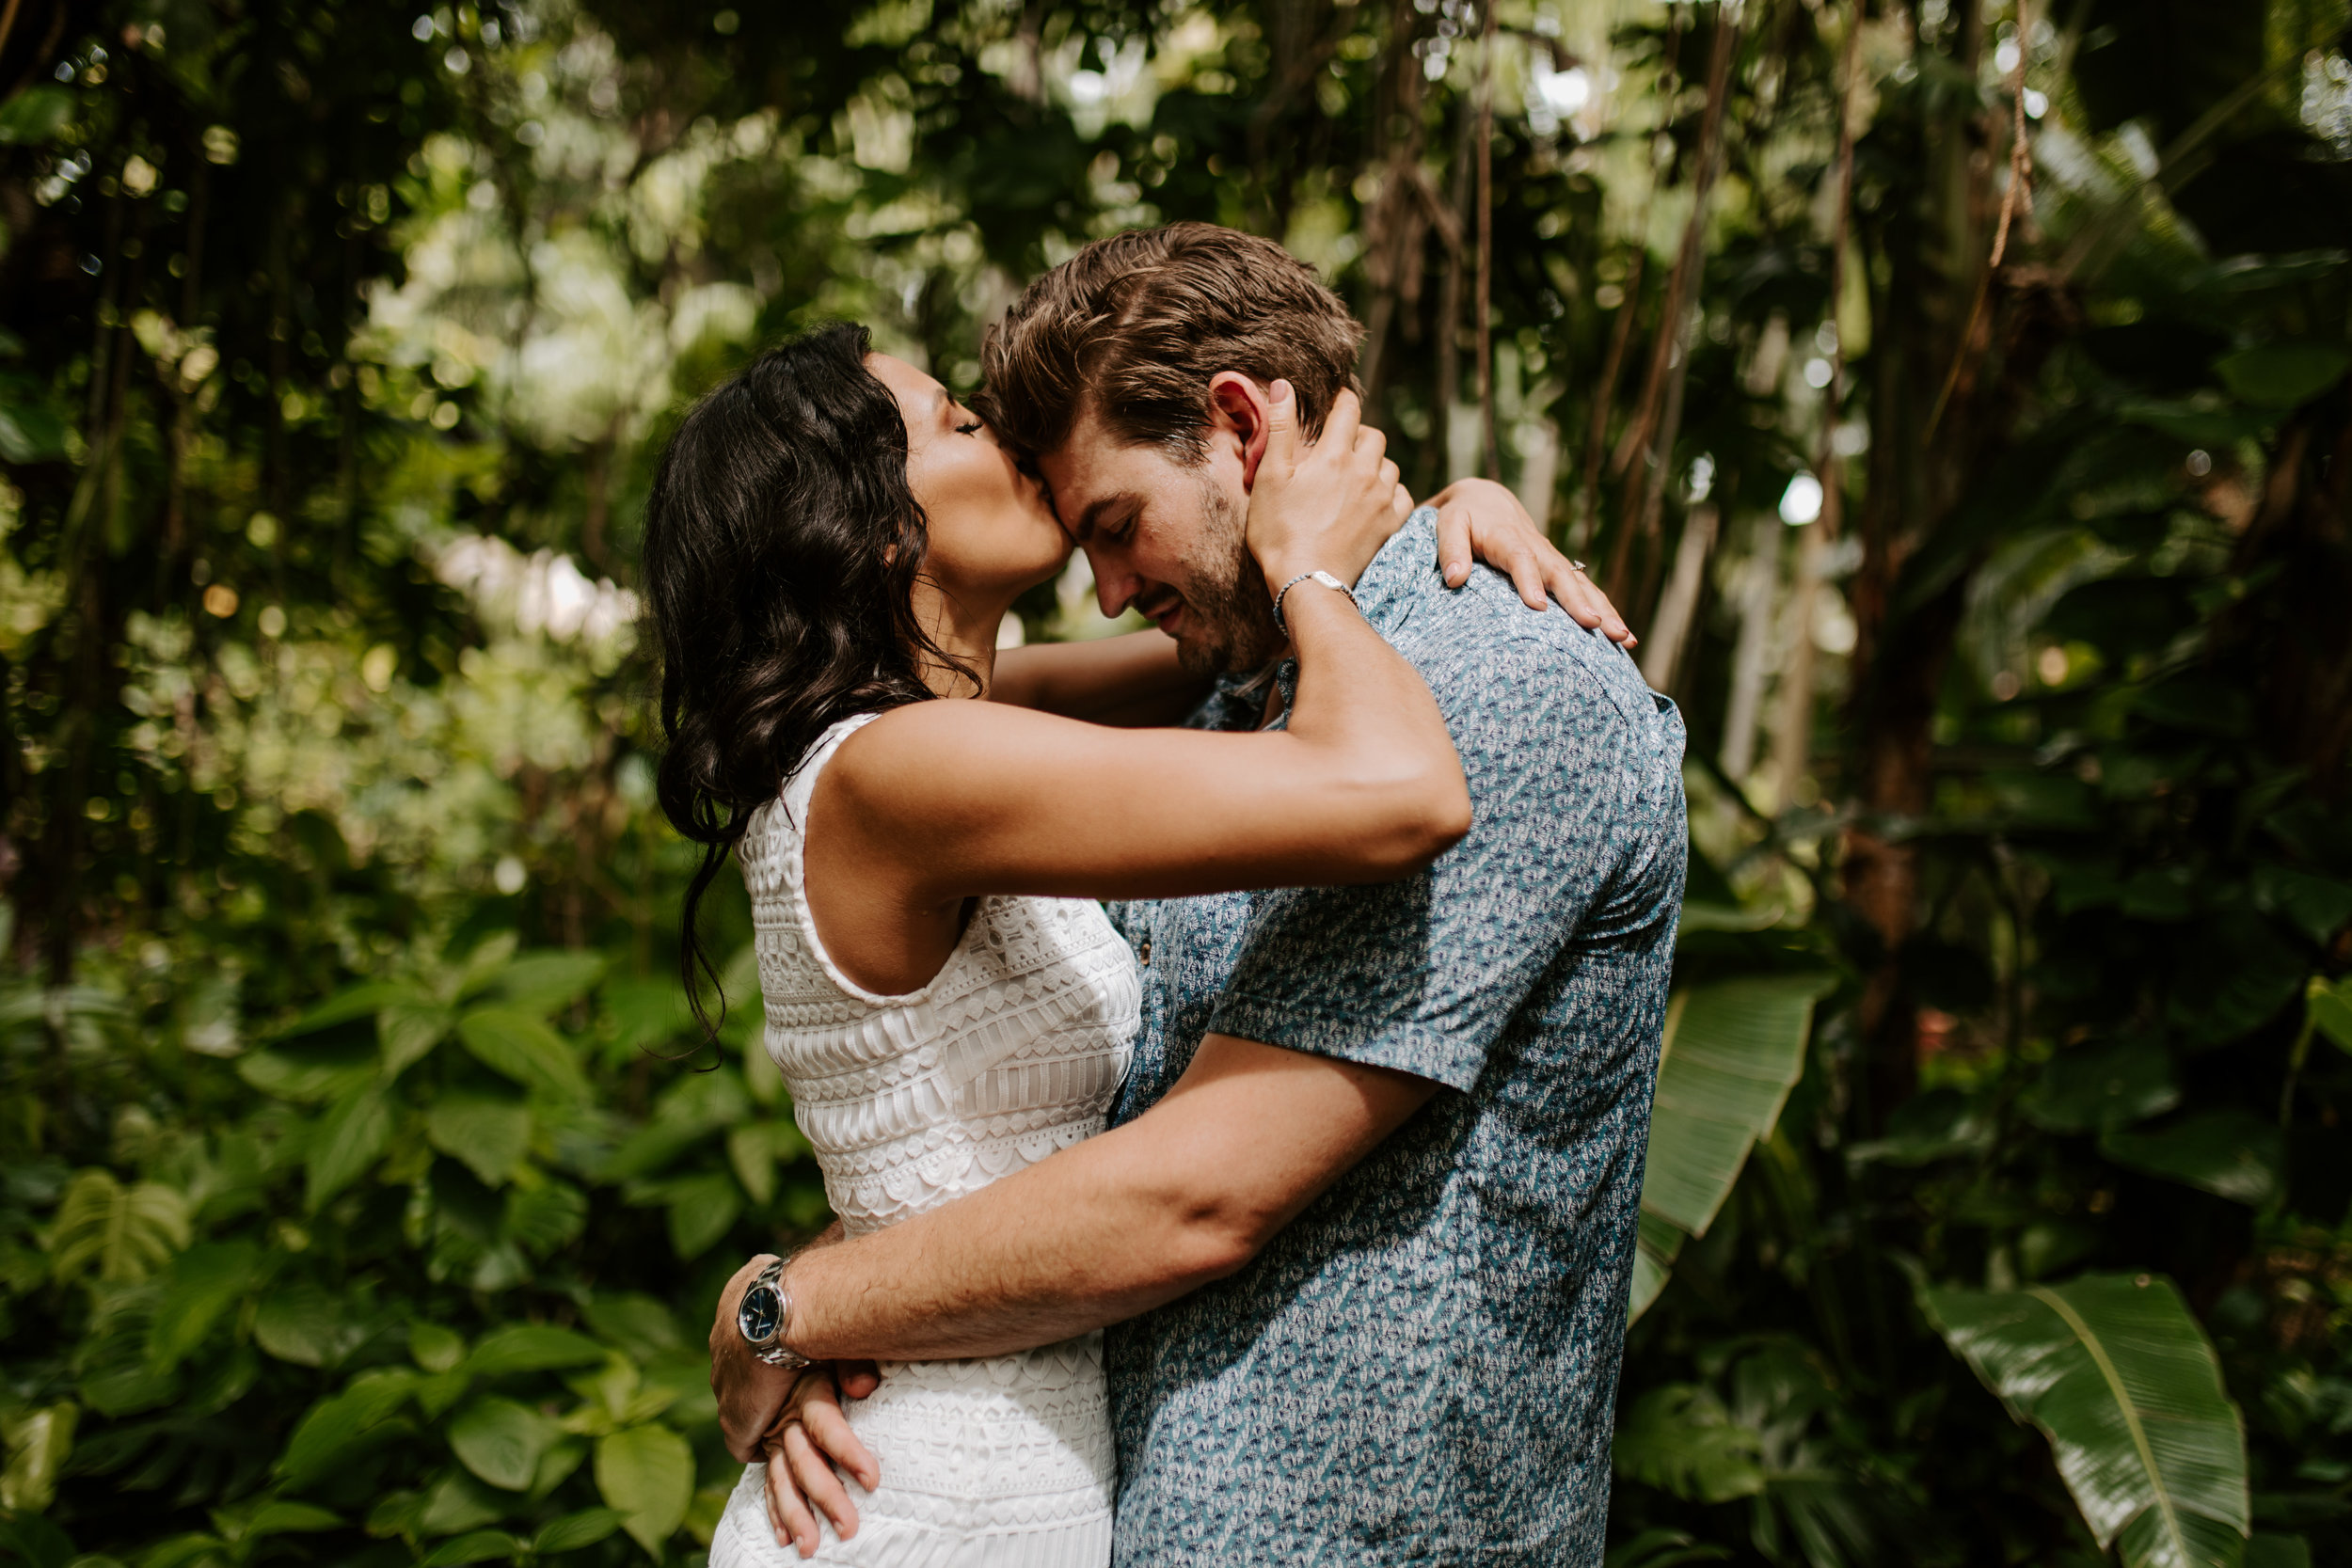 Sunken_Gardens-St_Pete-Allie_+_Eric-Engagement-Native_Expressions-347.jpg